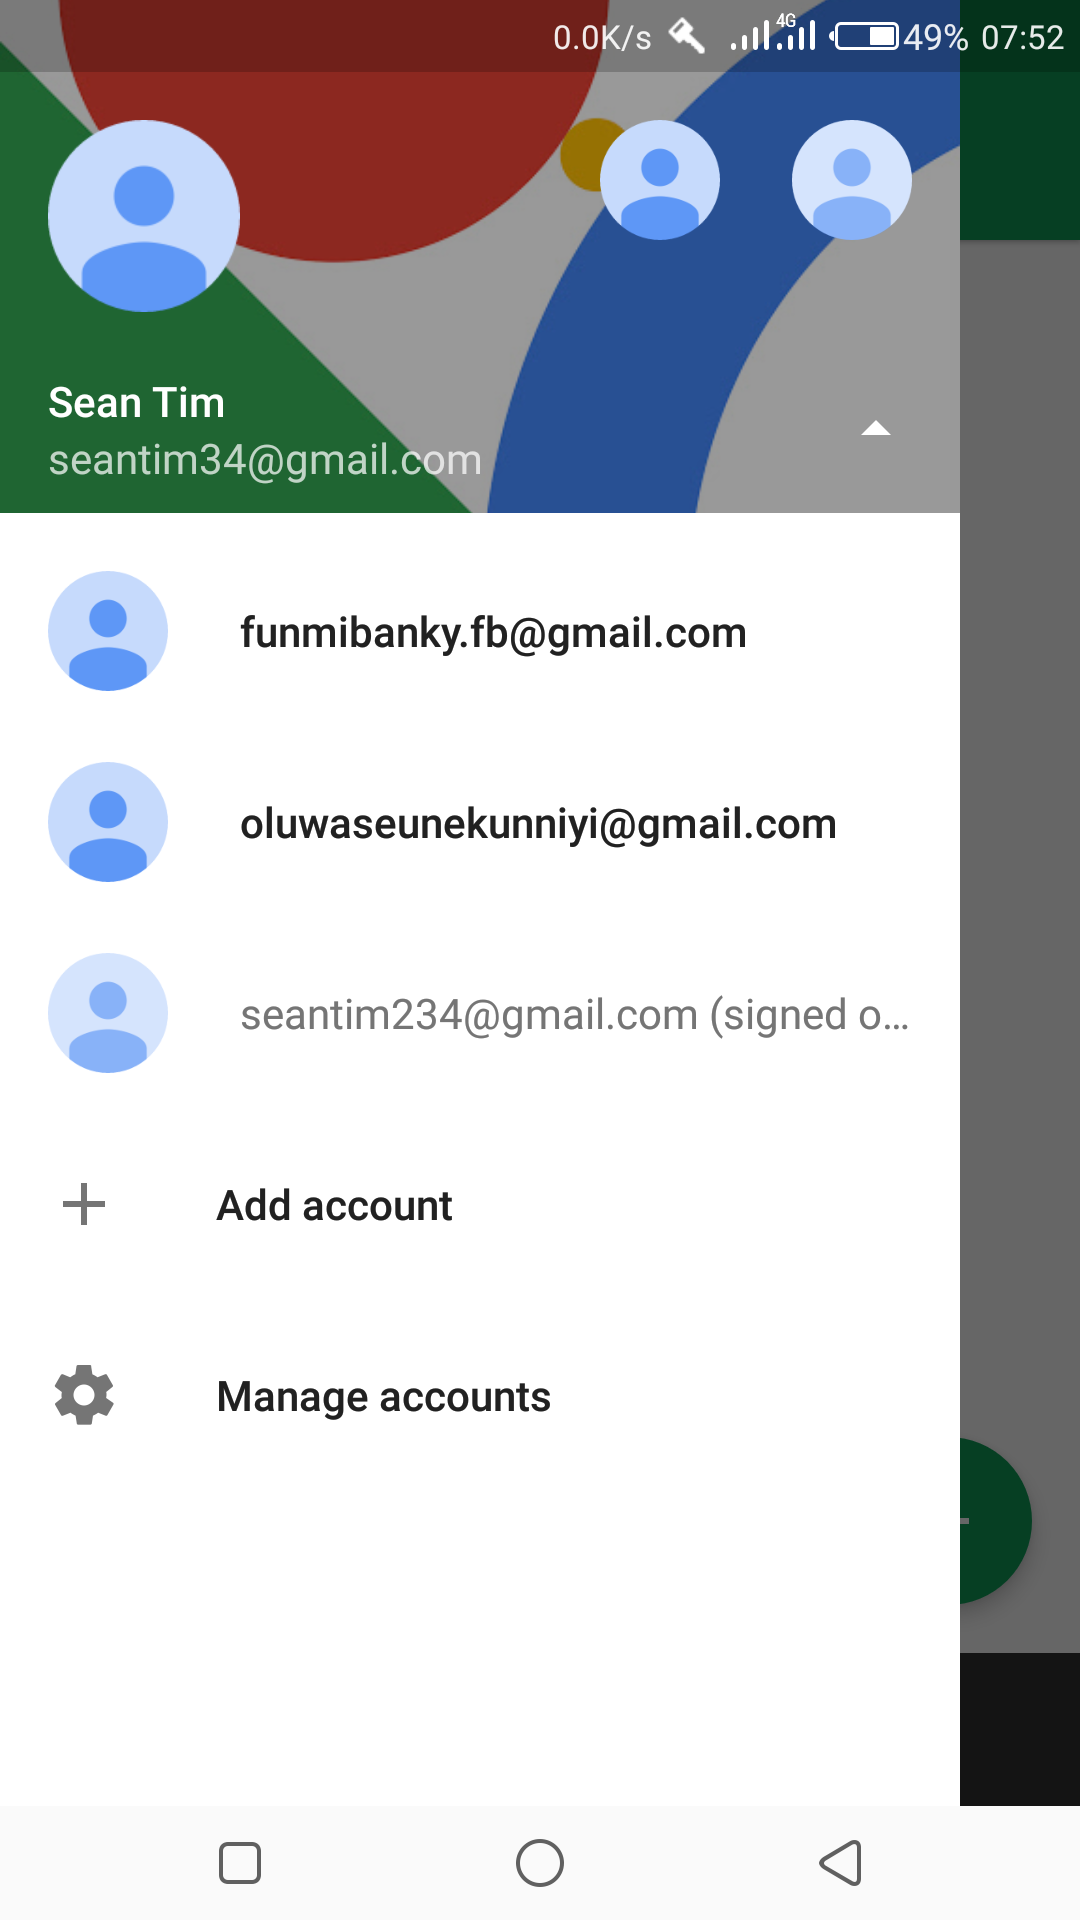 I linked 3 different accounts to my hangouts application but I can't